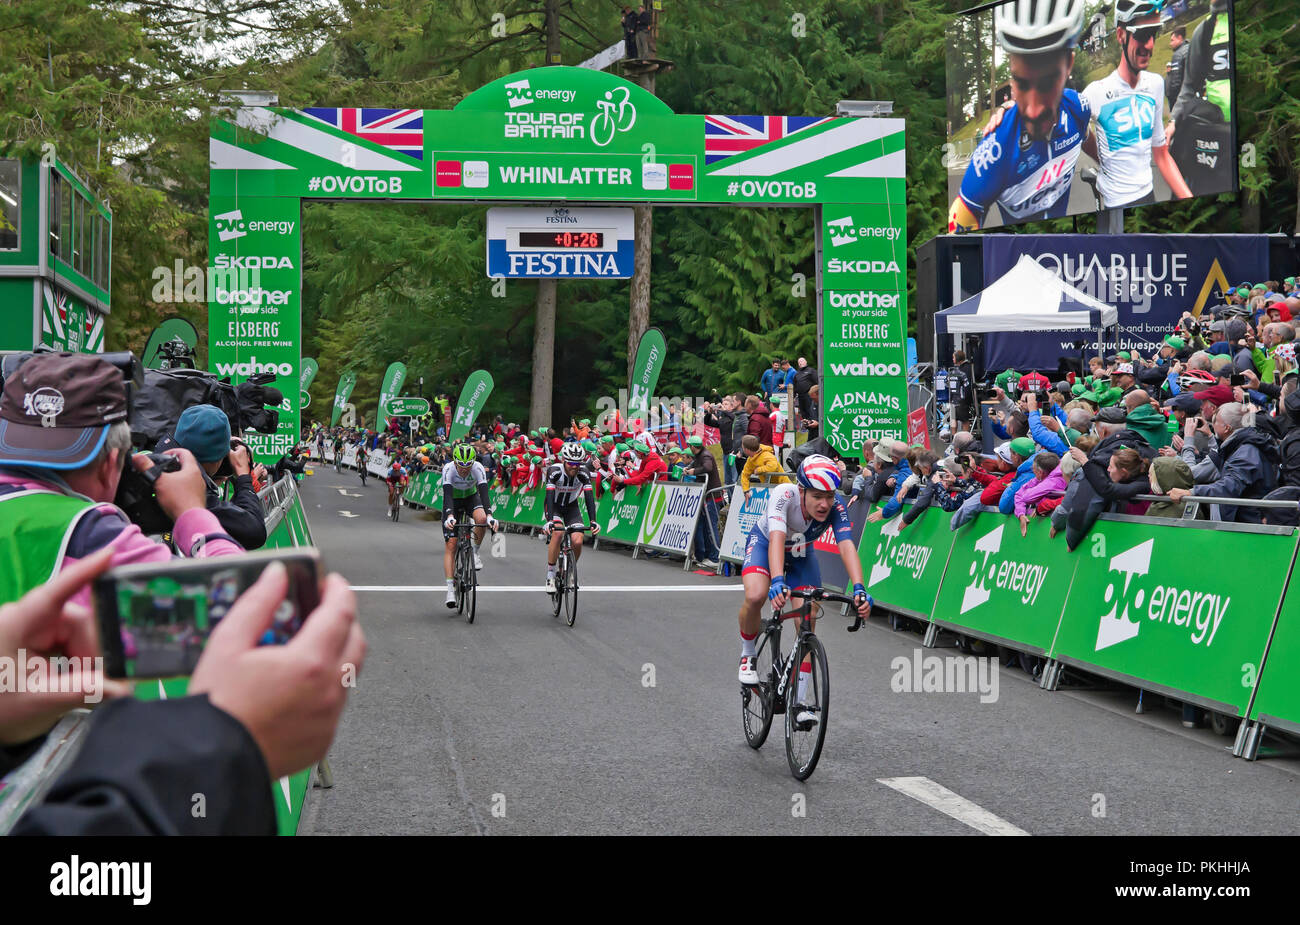 Stage 6 Tour of Britain 7 September 2018, Whinlatter Visitor Centre. Photographers lean over barriers to capture exhausted riders at the finish line. - Stock Image